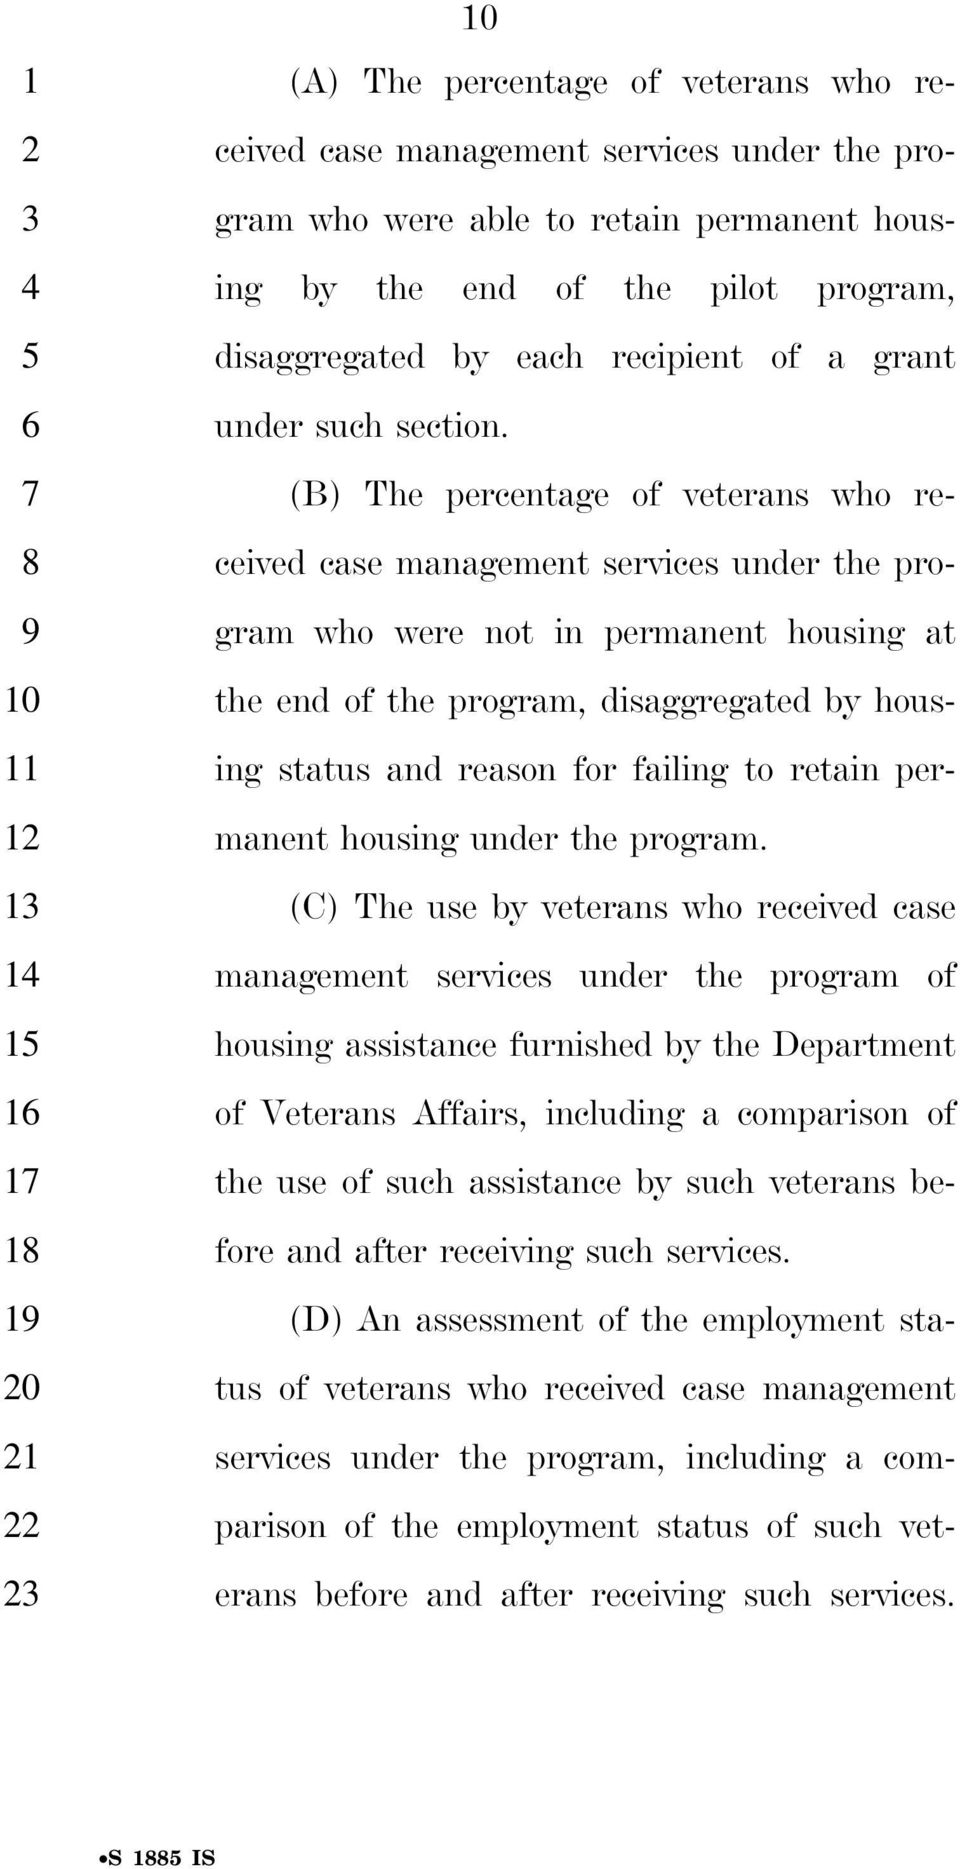 (B) The percentage of veterans who received case management services under the program who were not in permanent housing at the end of the program, disaggregated by housing status and reason for